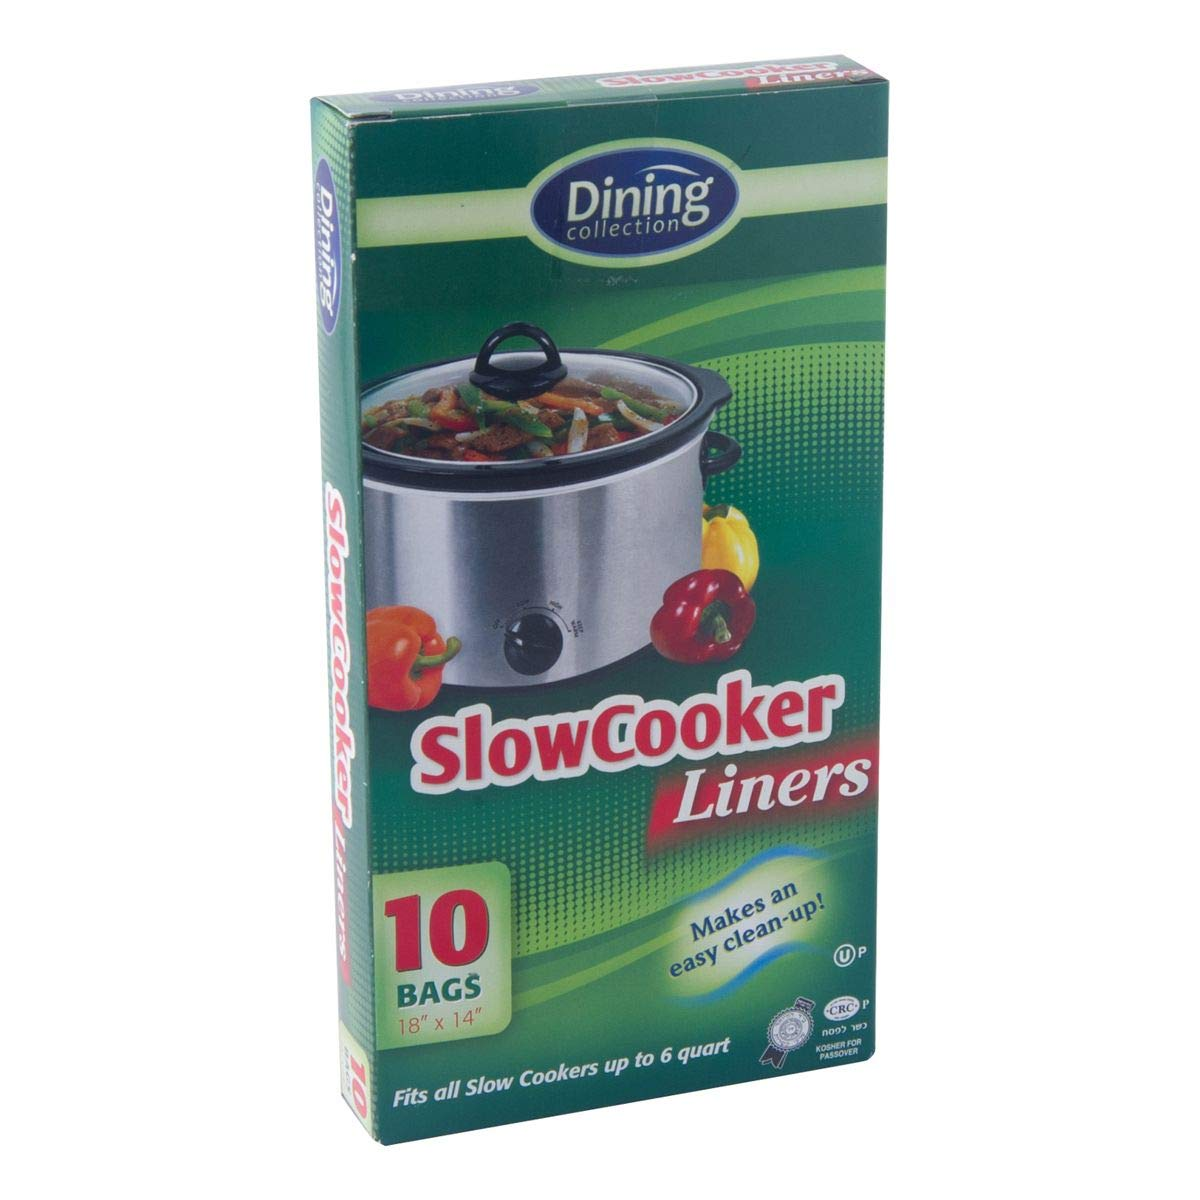 1 Dining Collection Slow Cooker Liners 10 Bags 14x18